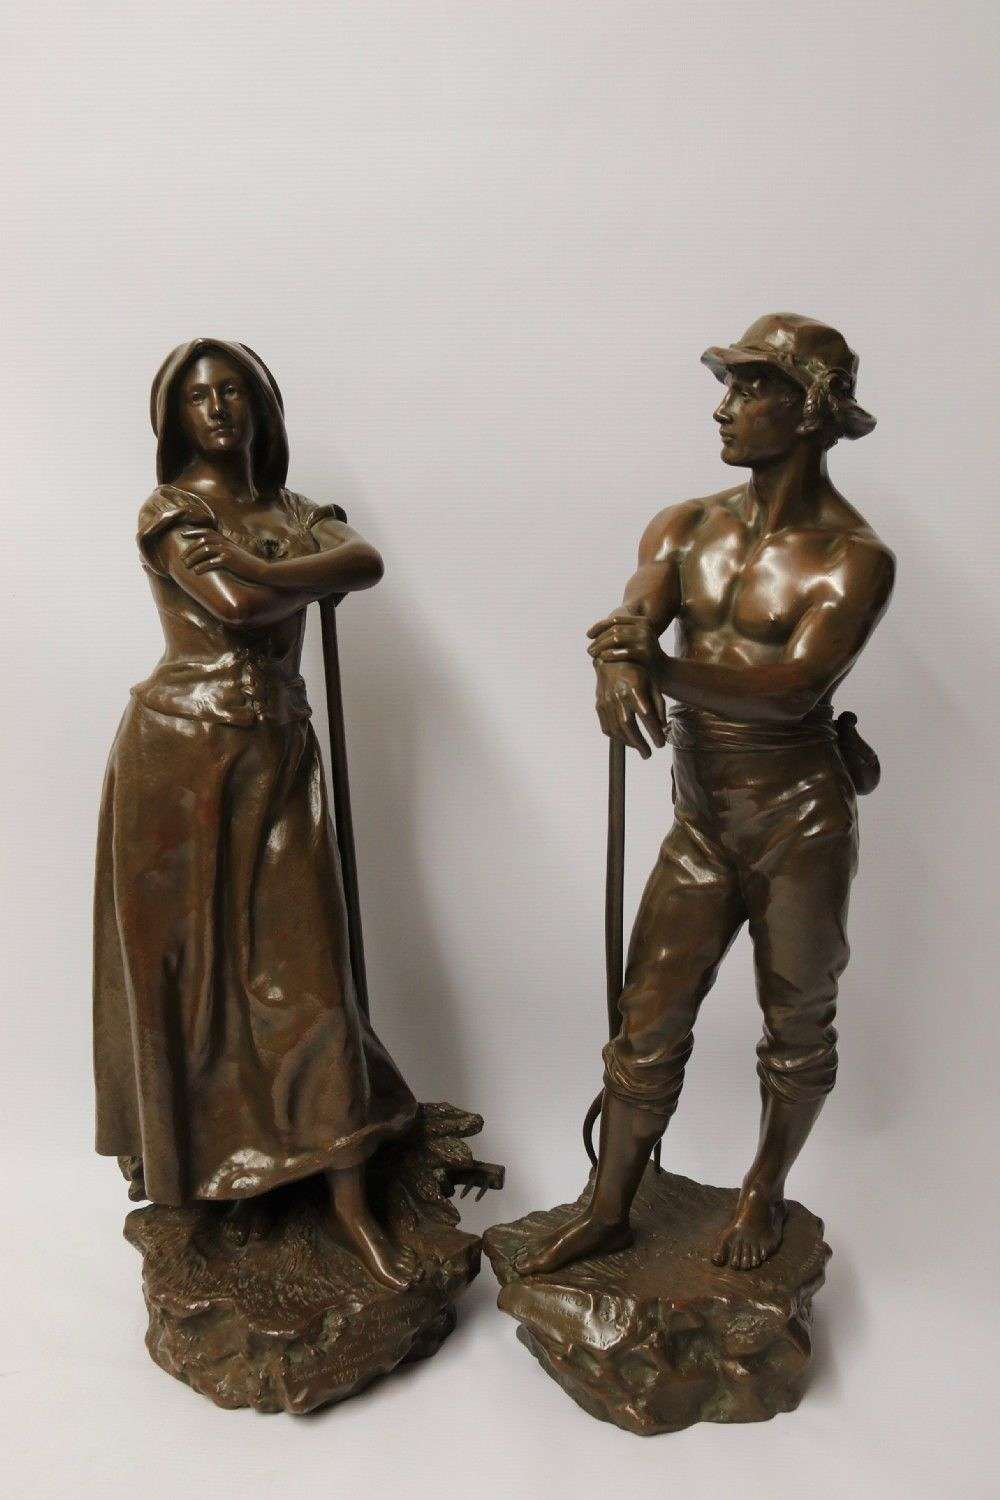 A Beautiful Pair Of Large Bronze Figures Depicting Farm Workers